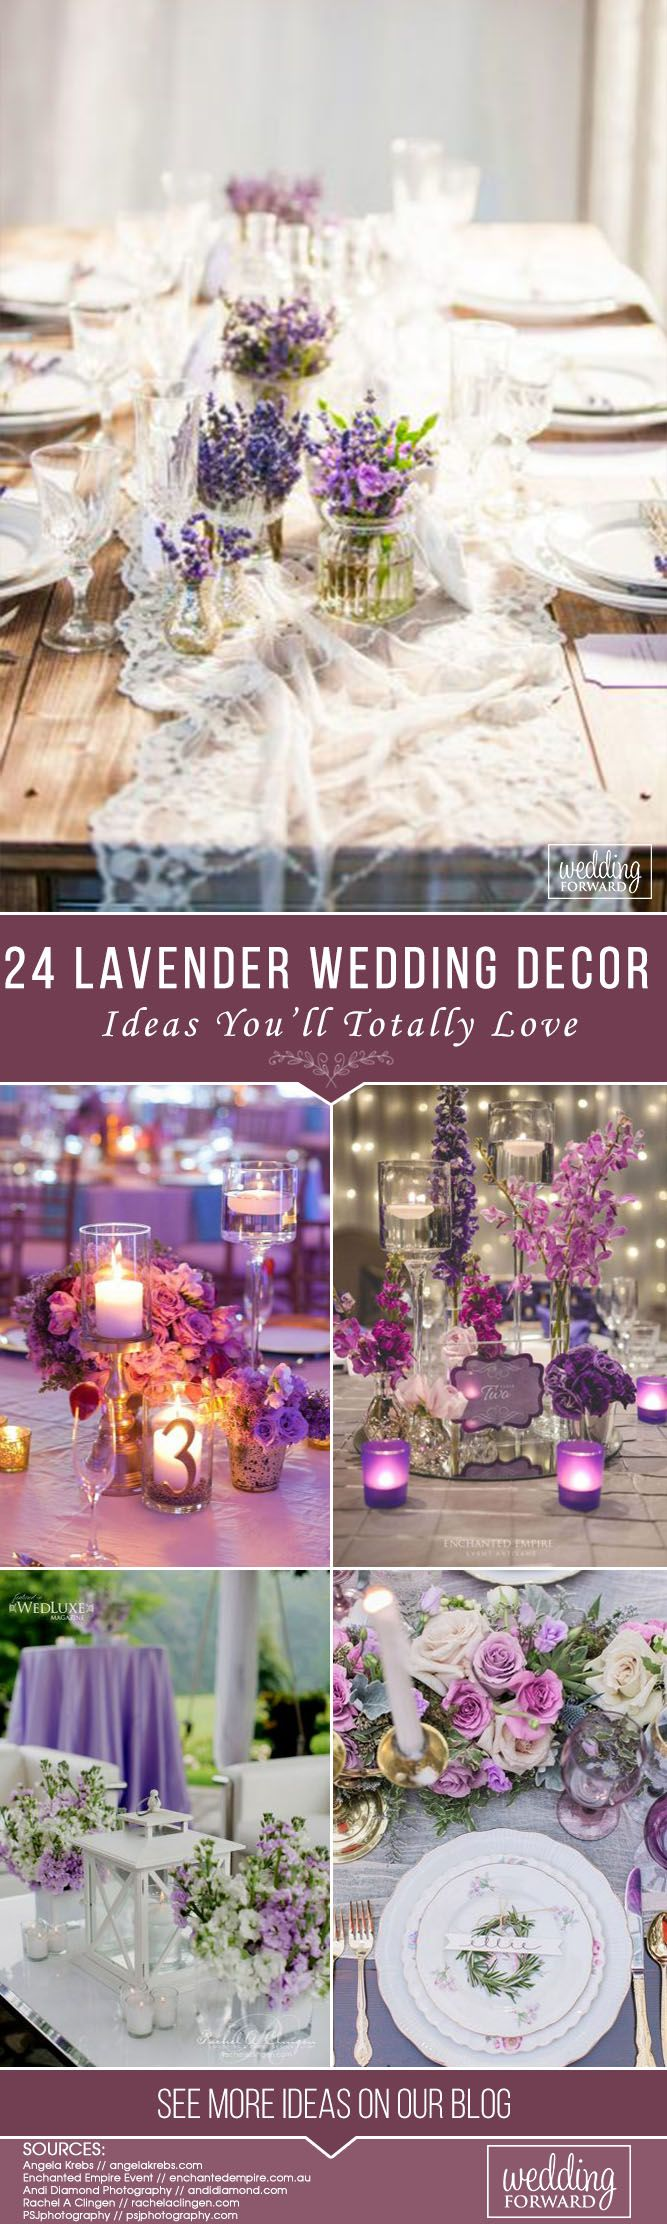 24 Lavender Wedding Decor Ideas You'll Totally Love ❤ Lavender wedding decor ideas are very exquisite and beautiful. Subtle lavender shades look great in the hall decoration and the table setting. See more: http://www.weddingforward.com/lavender-wedding-decor-ideas/ #weddings #decoration #lavenderweddingdecorideas